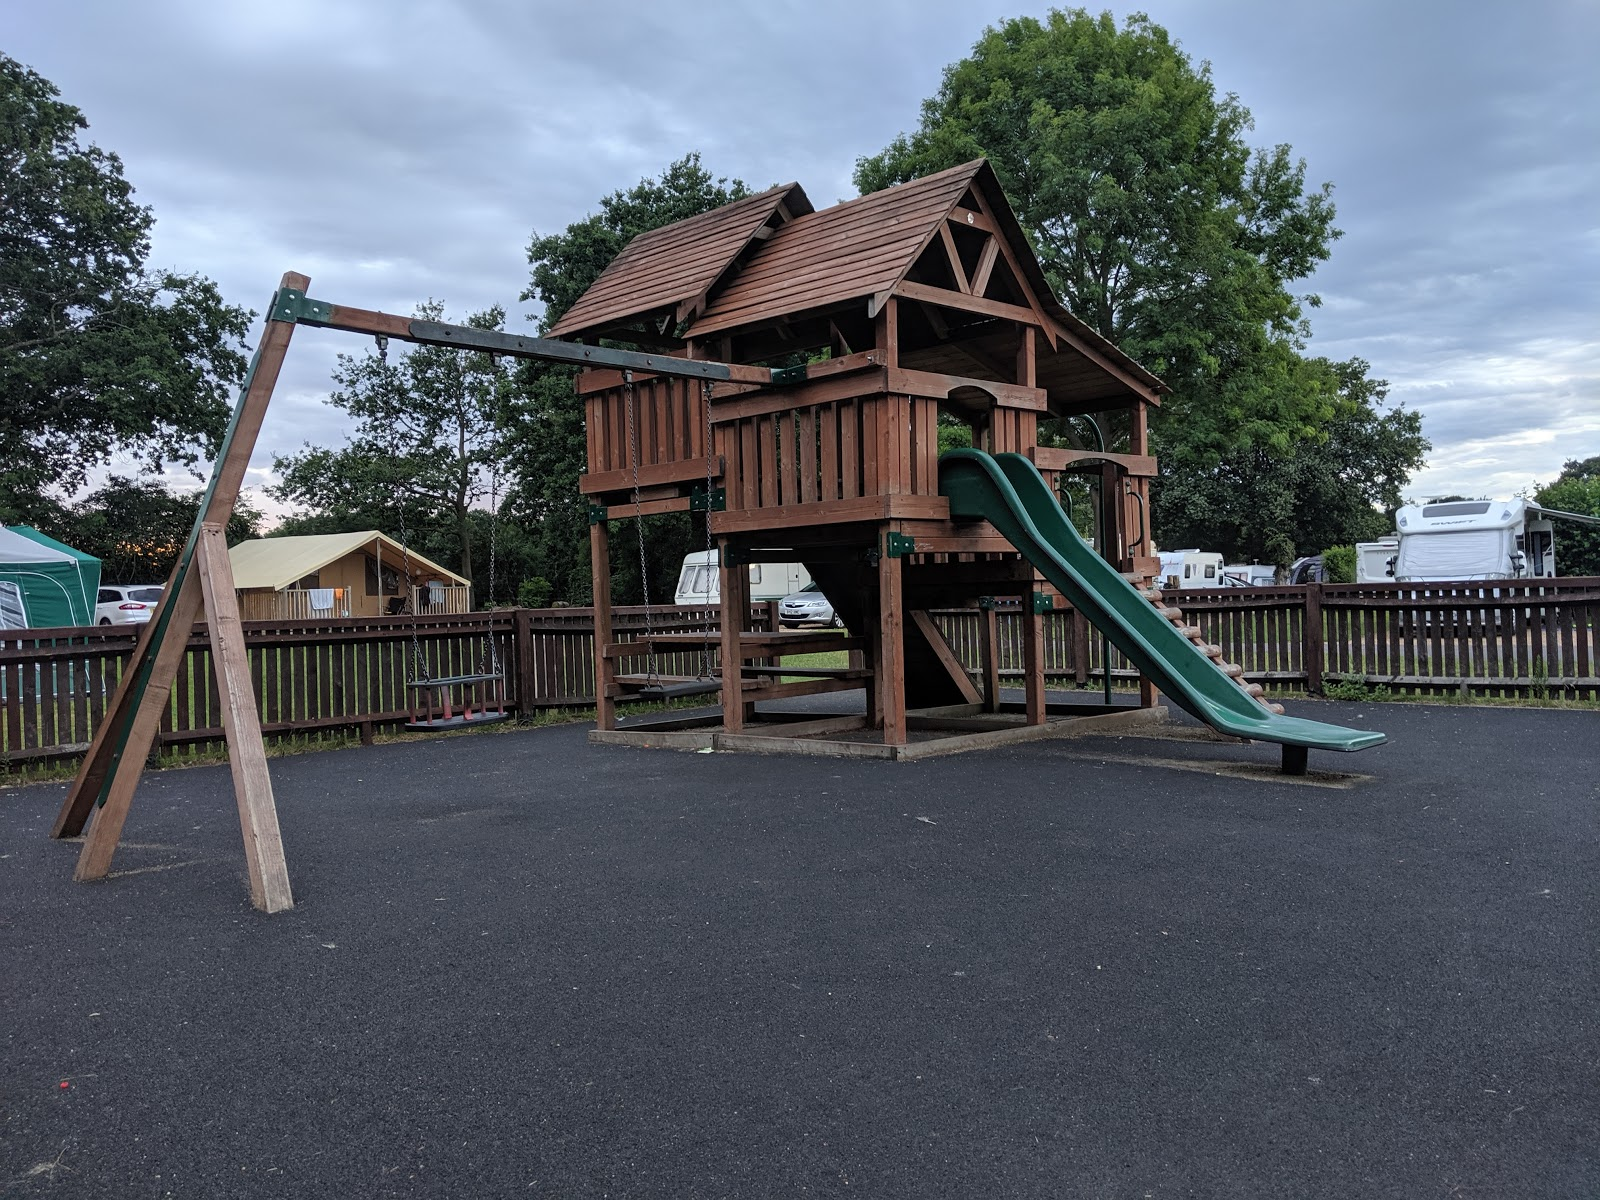 Ready Camp Horsley Review : Glamping near LEGOLAND and Chessington World of Adventures - play park